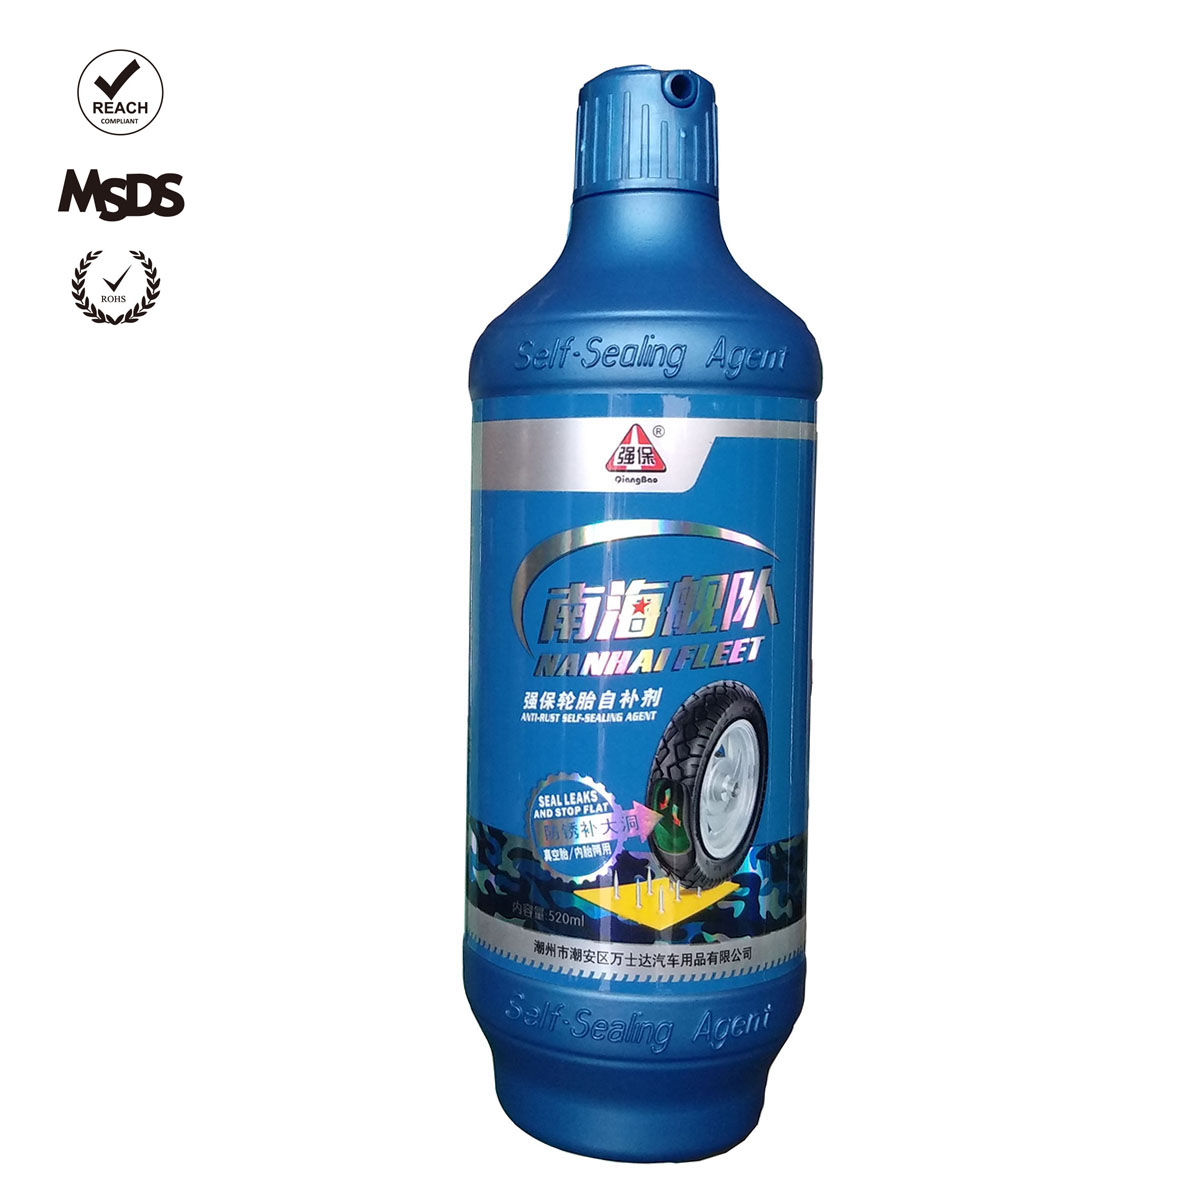 Car tubeless Anti Flat tire sealant better than Slime Nanhai fleet NF530ml 20 years OEM experience p